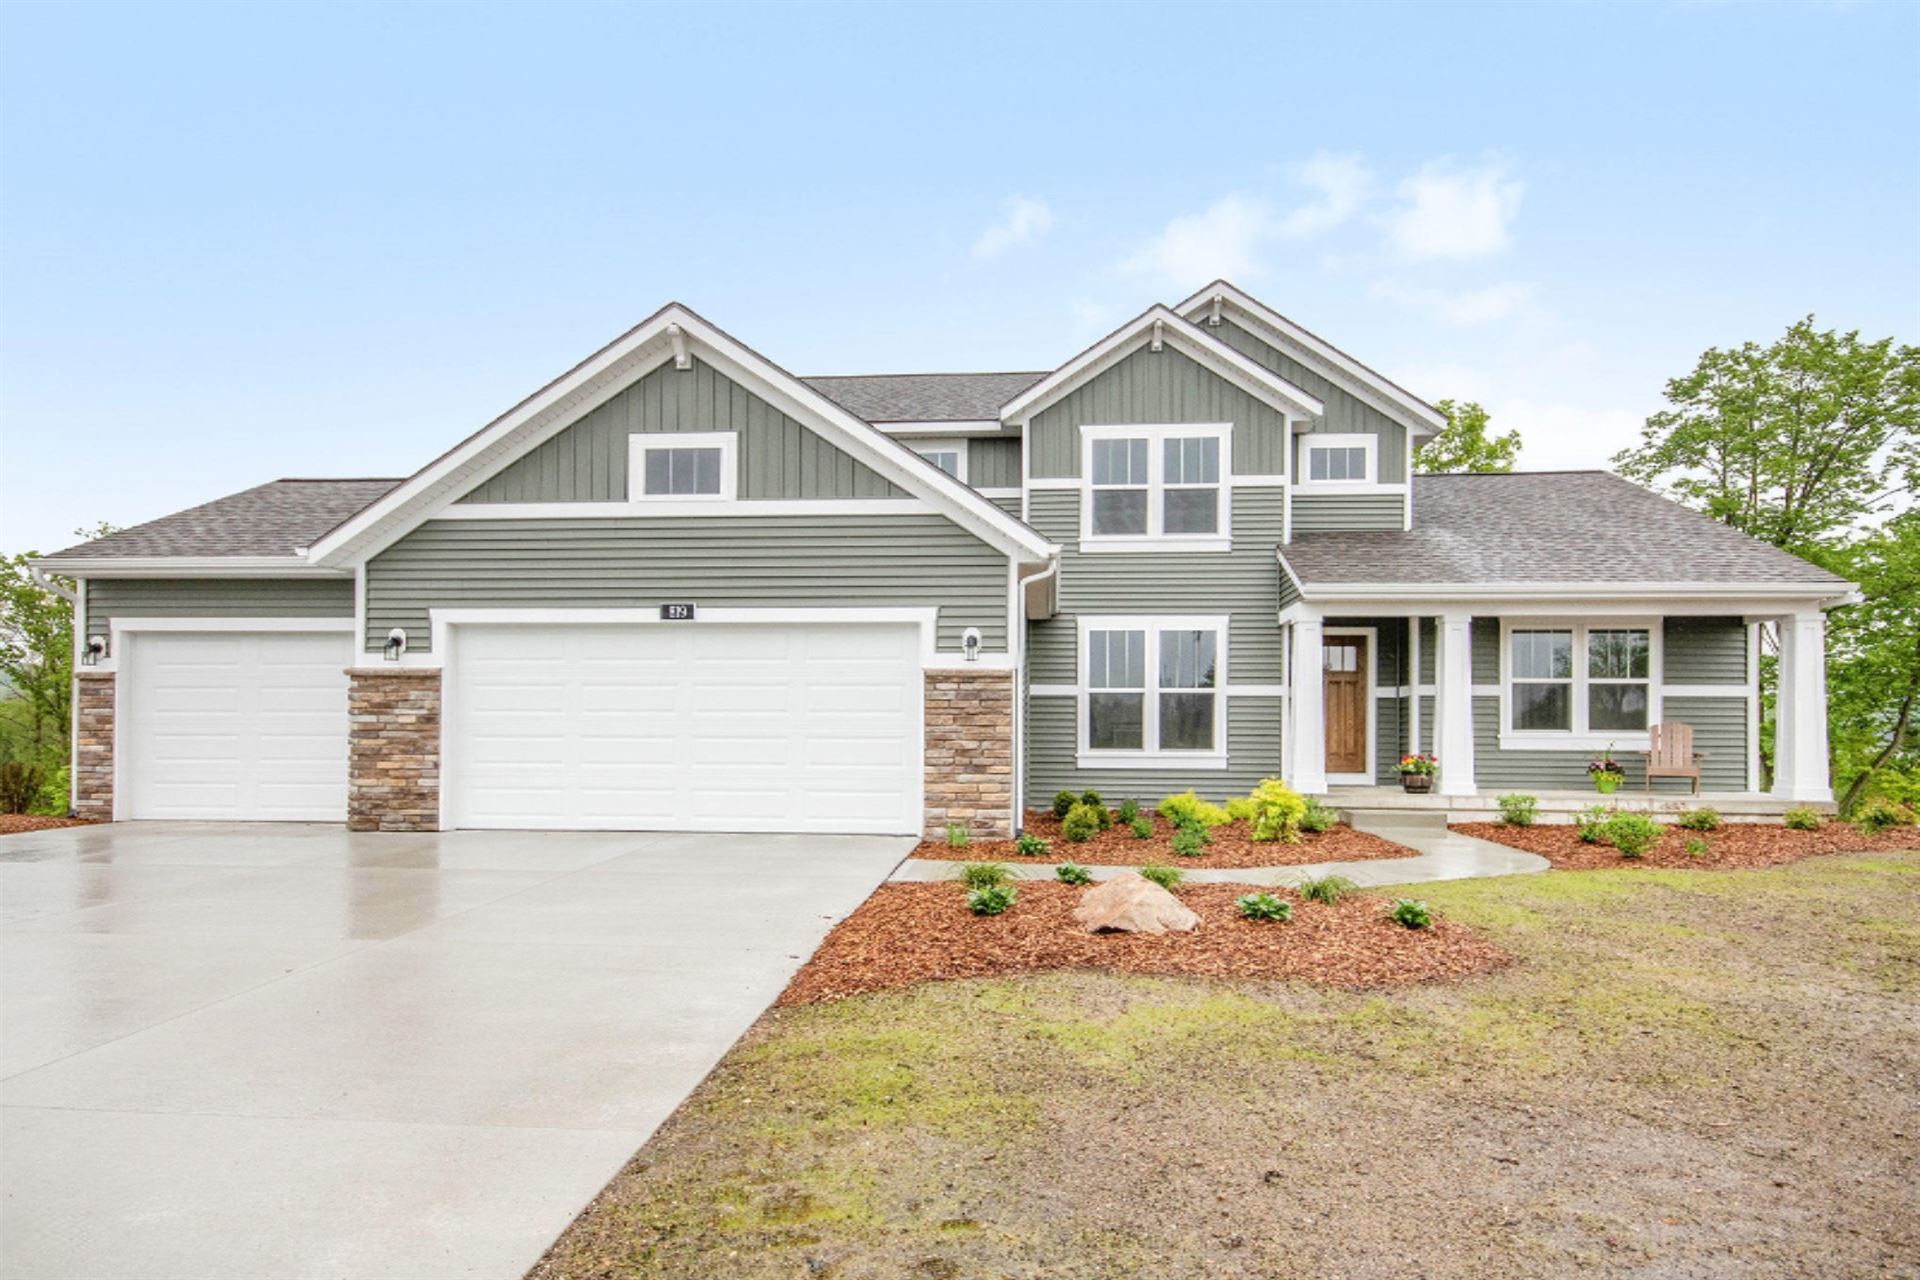 819 Water Ridge Drive SE, Byron Center, MI 49315 - MLS#: 19006860